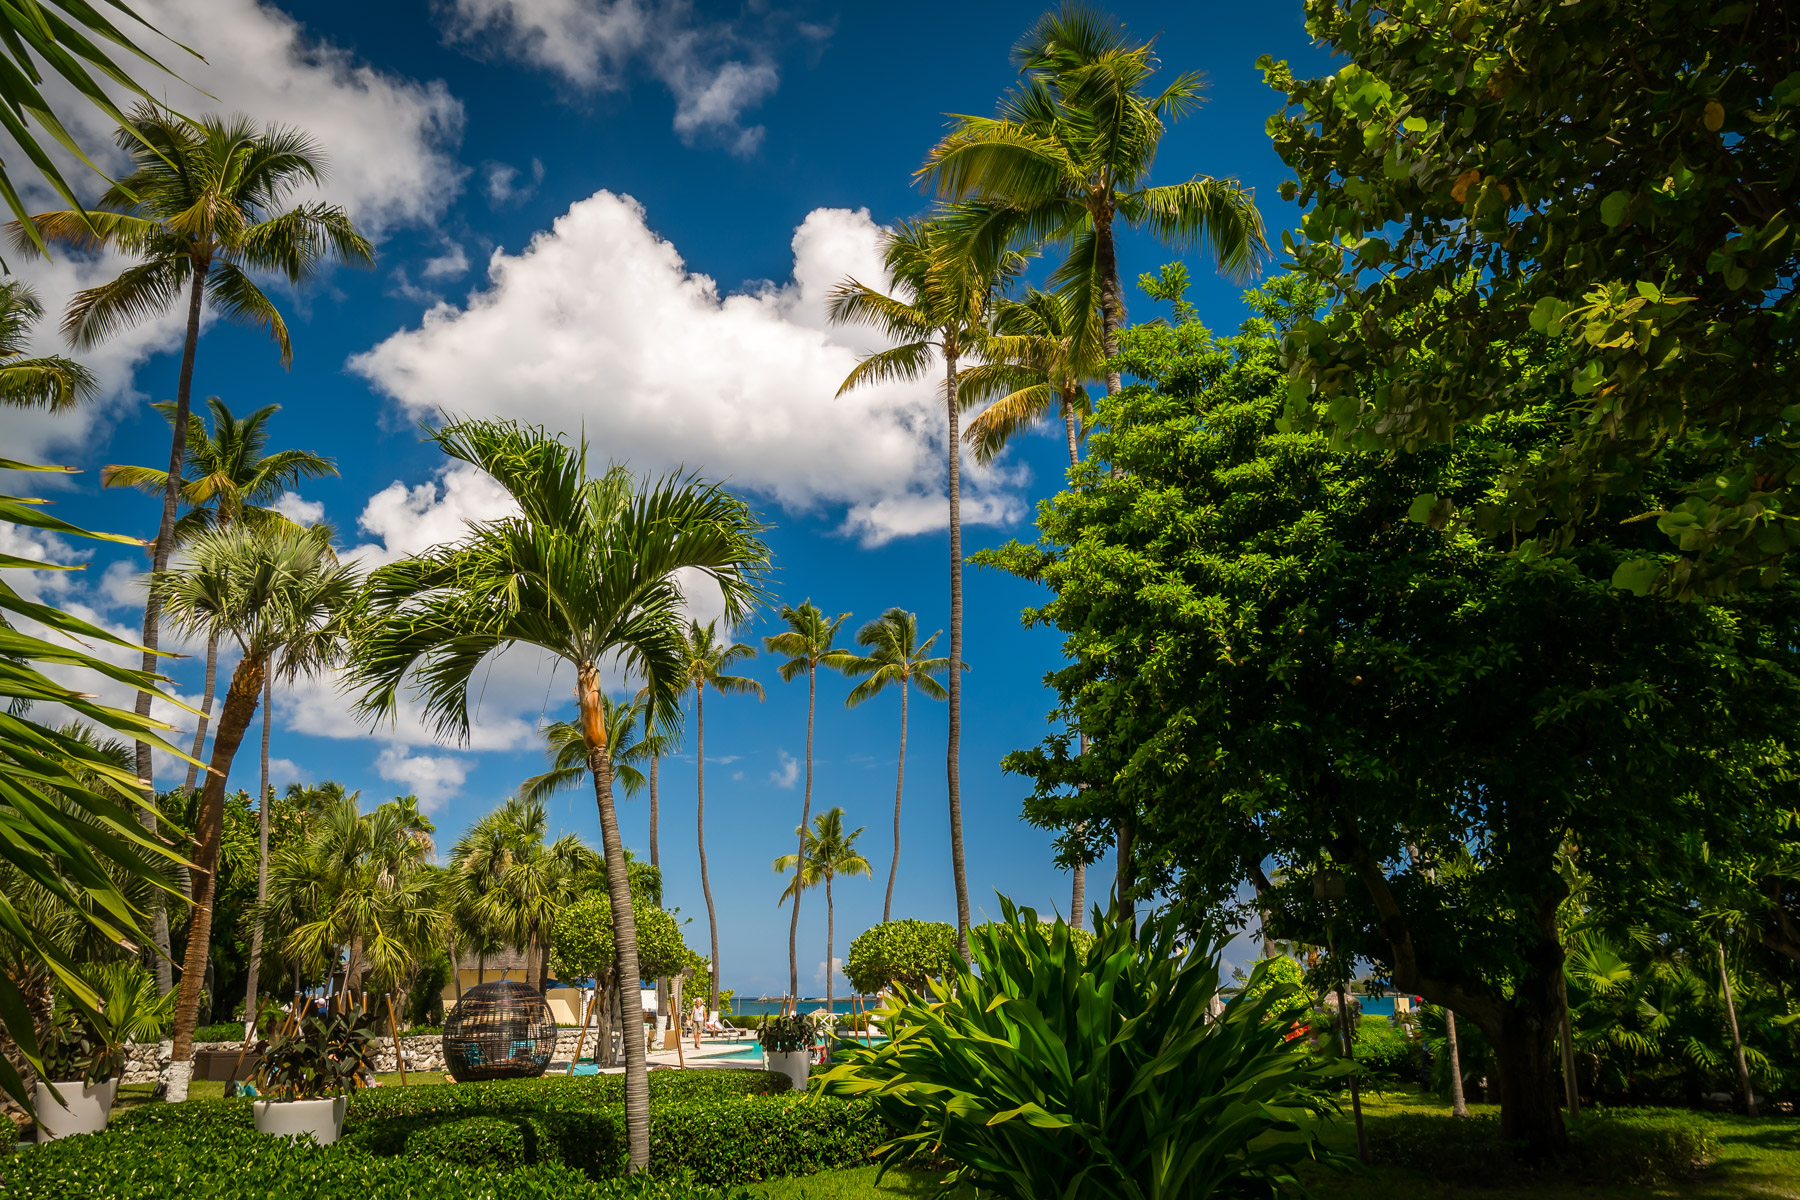 Palm trees tower over the grounds of the historicBritish Colonial Hilton in Nassau, Bahamas.